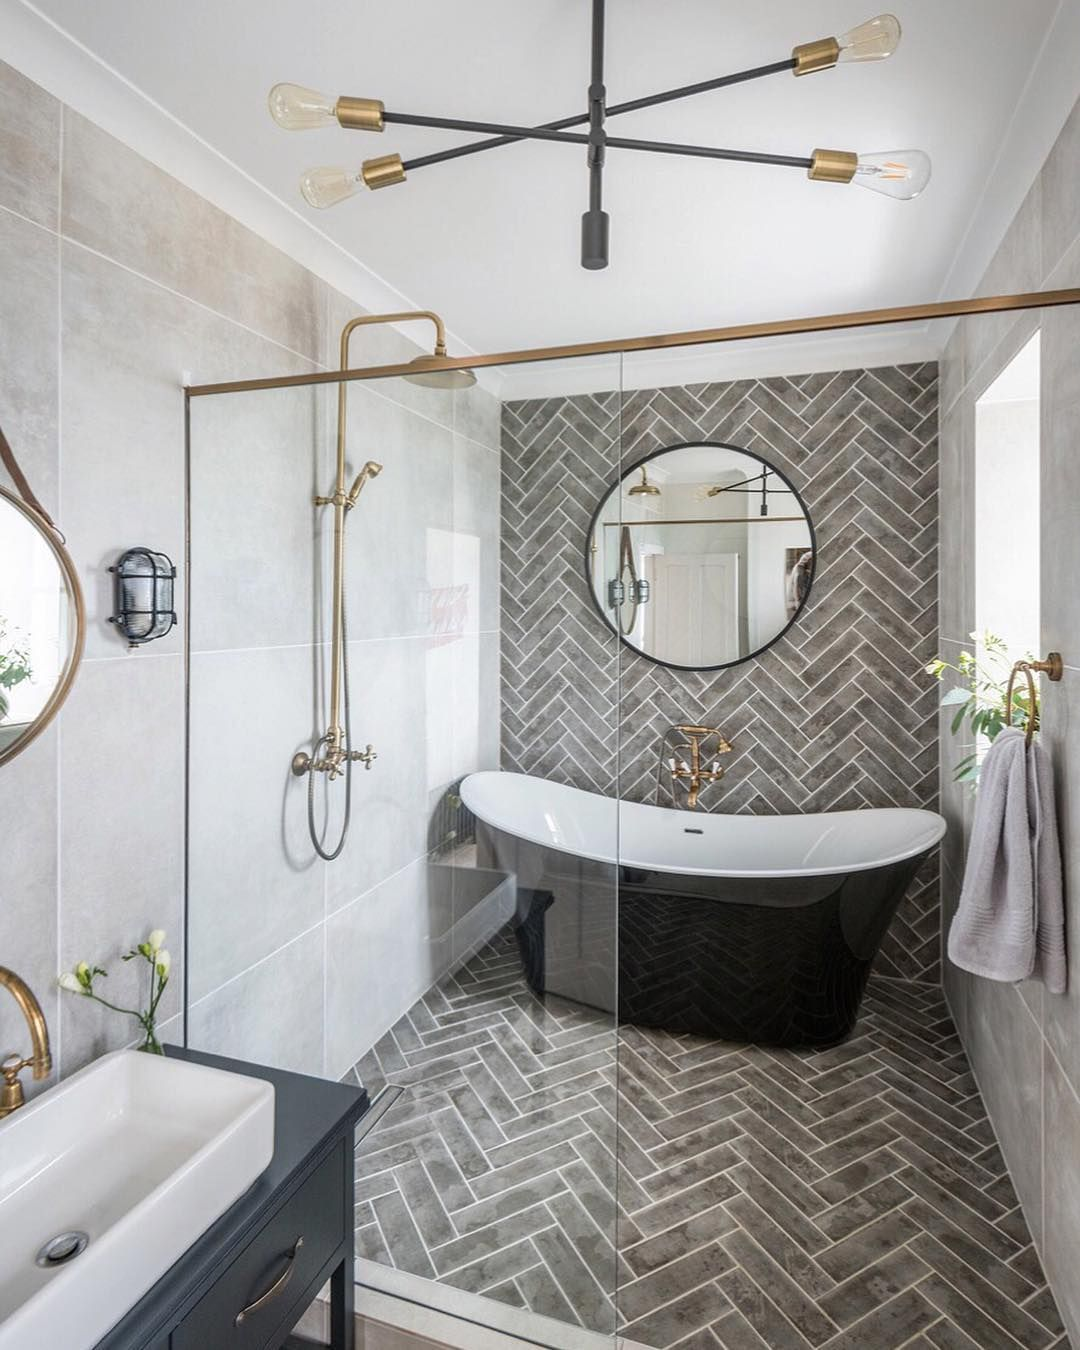 Extravagant Master Bathroom Complete With Freestanding Tub And Herringbone Tile Wet Room Master Bathroom Renovation Bathroom Design Bathroom Remodel Master